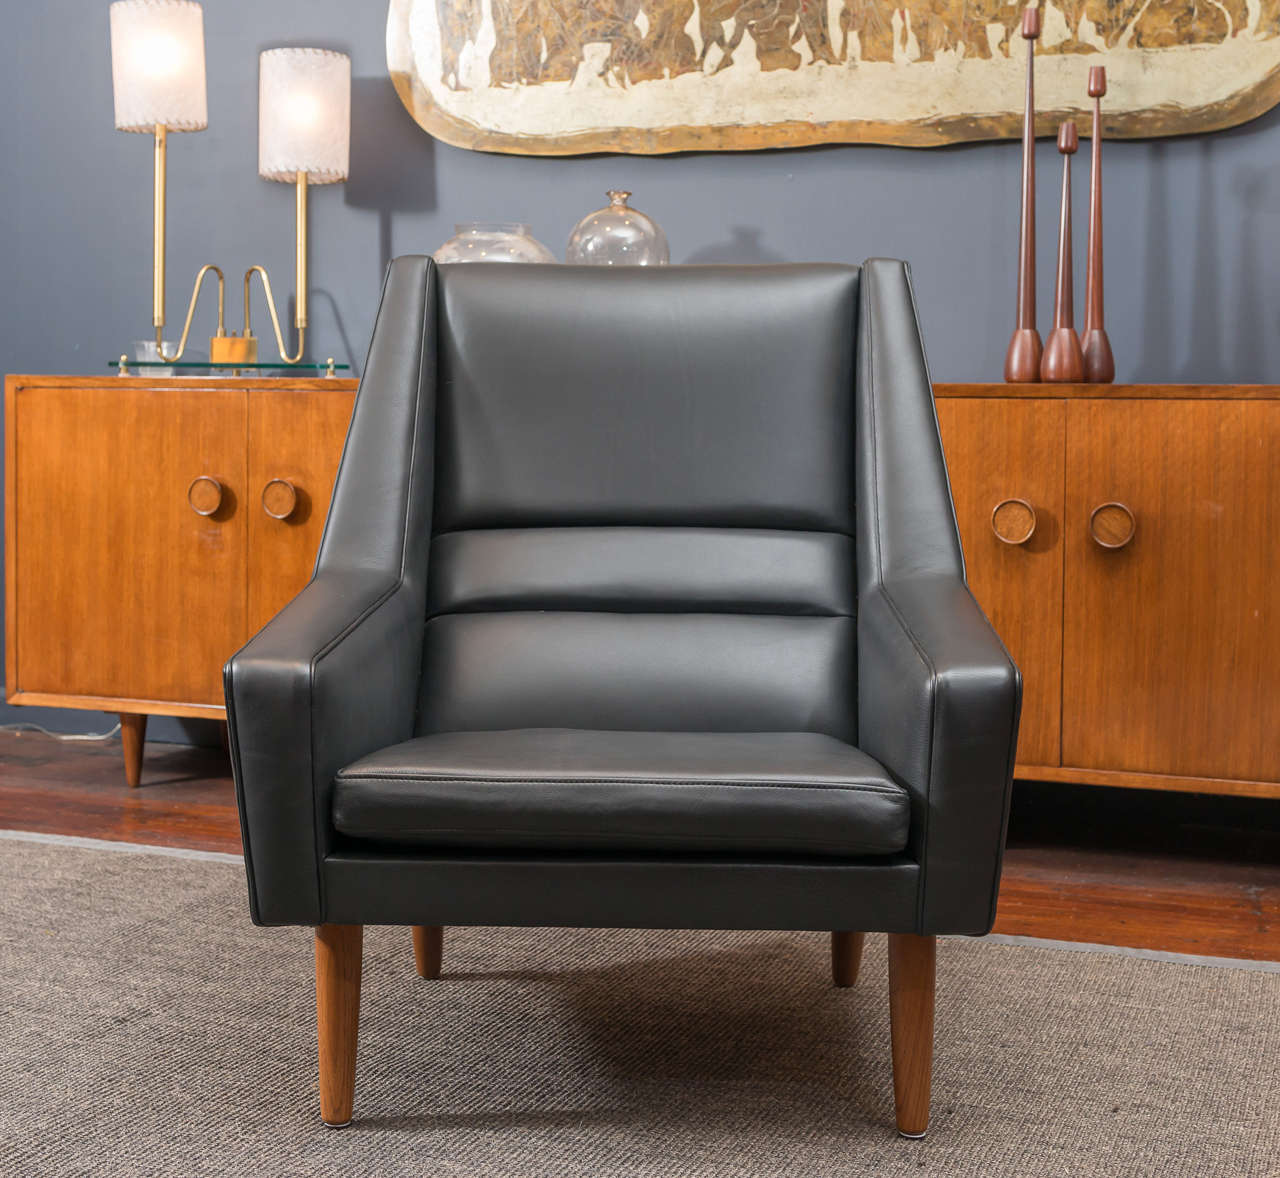 Danish Leather High Back Lounge Chair At 1stdibs - Leather High Back Lounge Chair